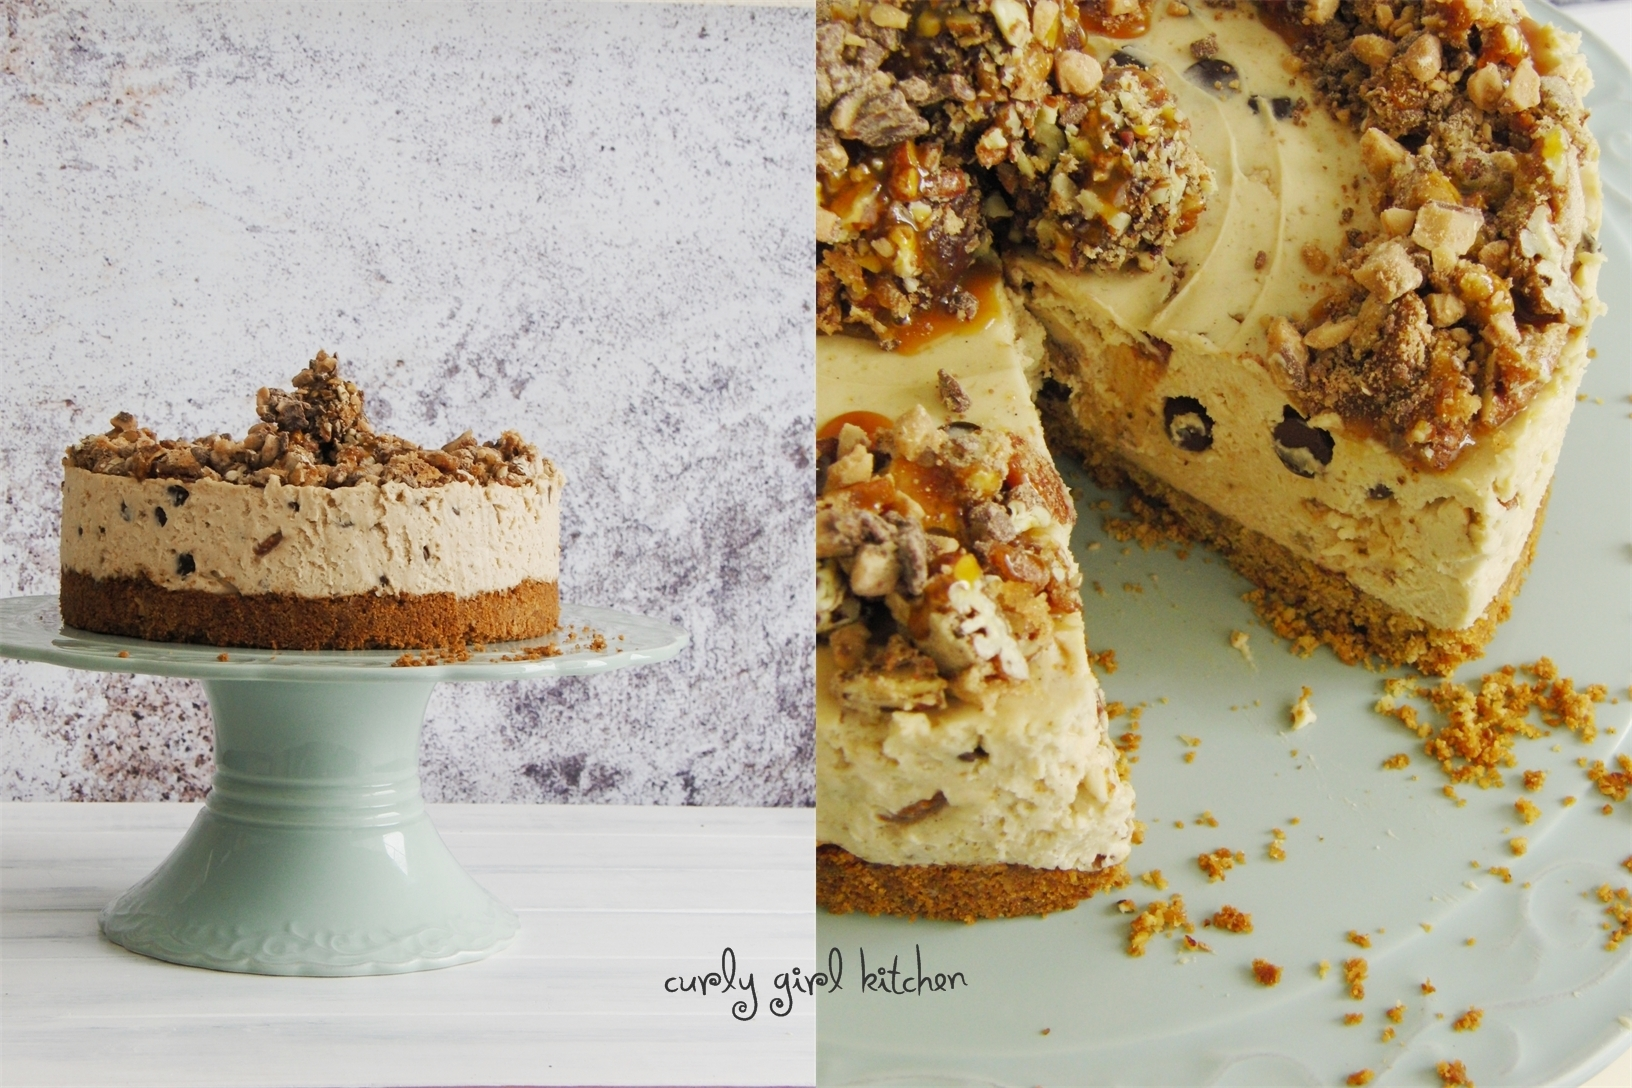 Chocolate Chip Cookie Dough Cheesecake with Salted Candied Pecans, Caramel and Toffee